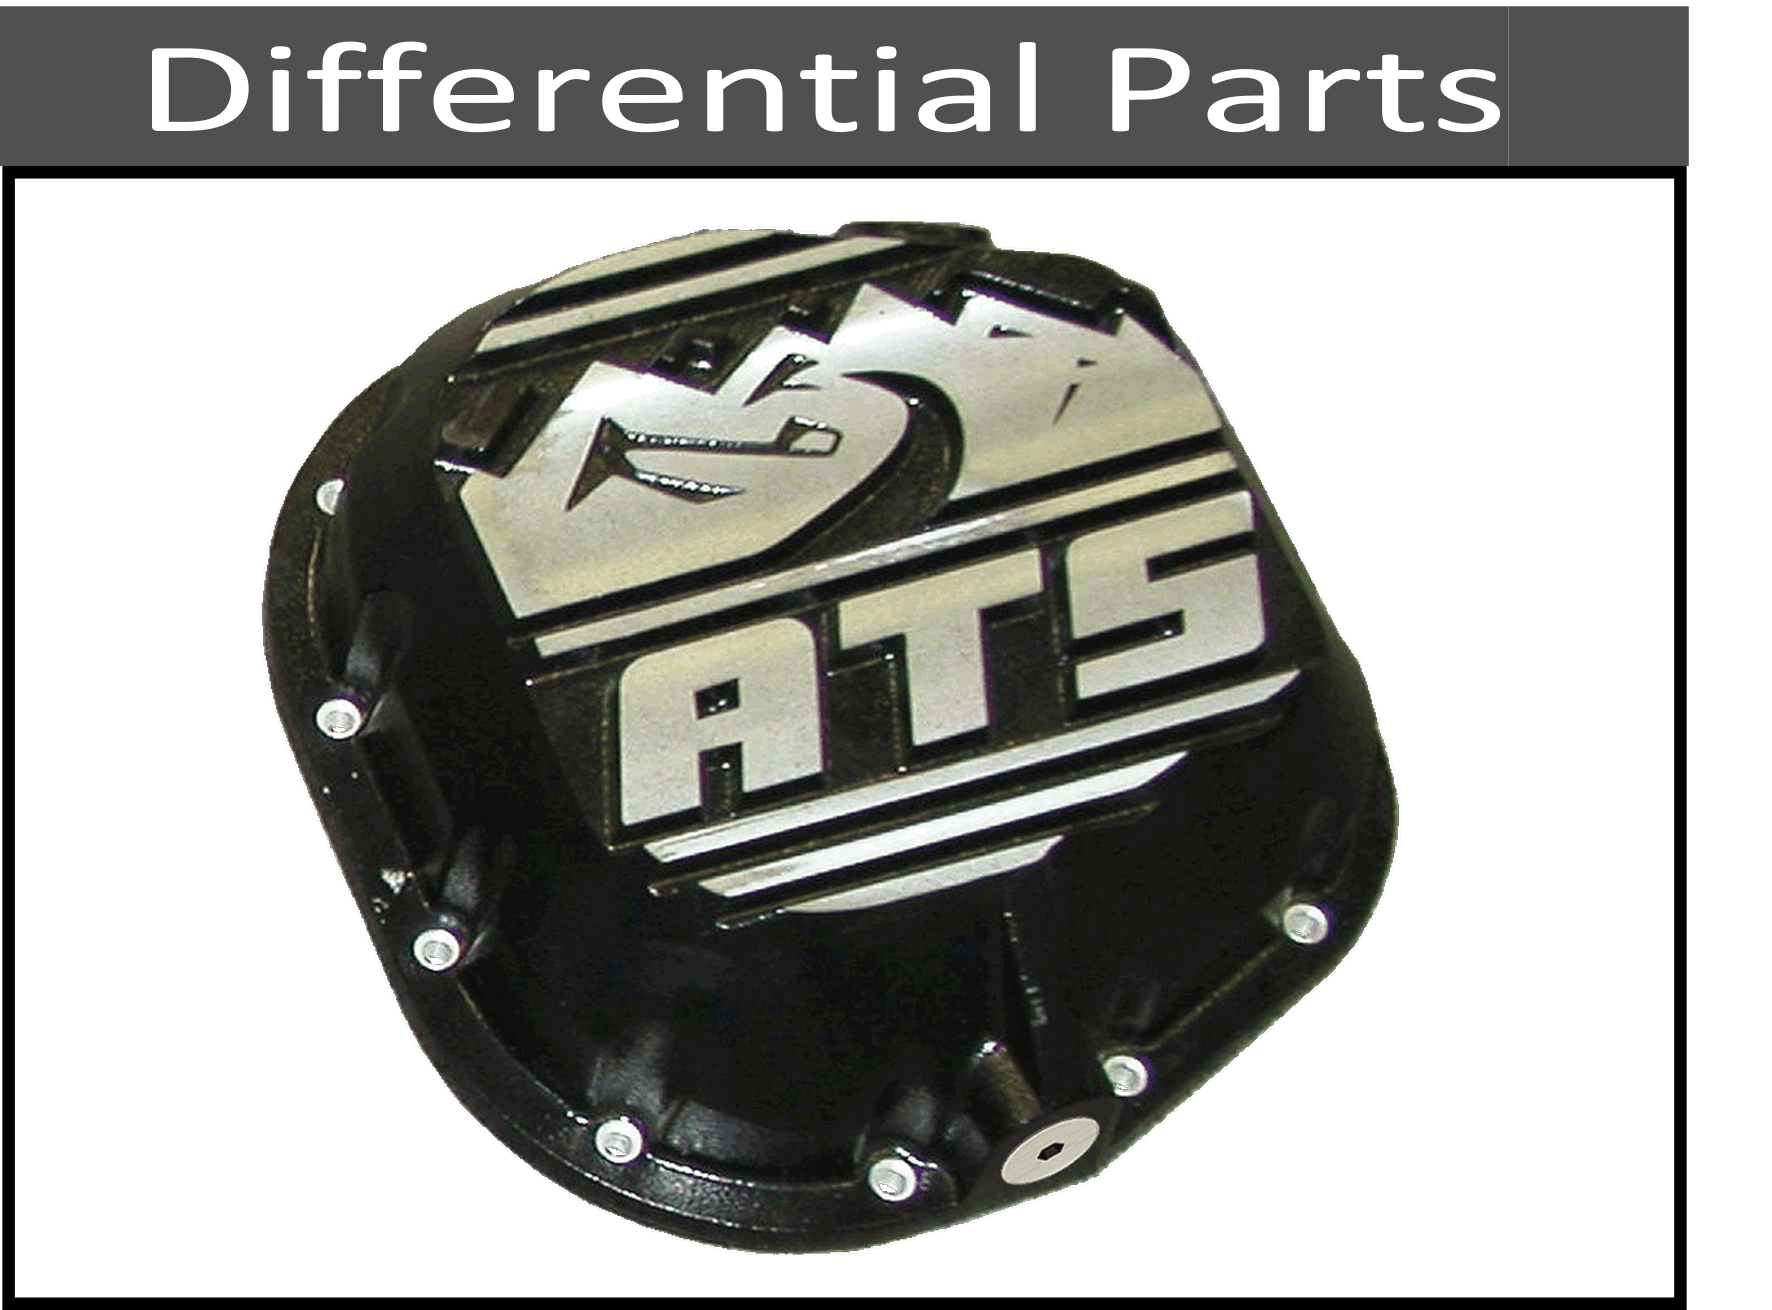 Differential Parts